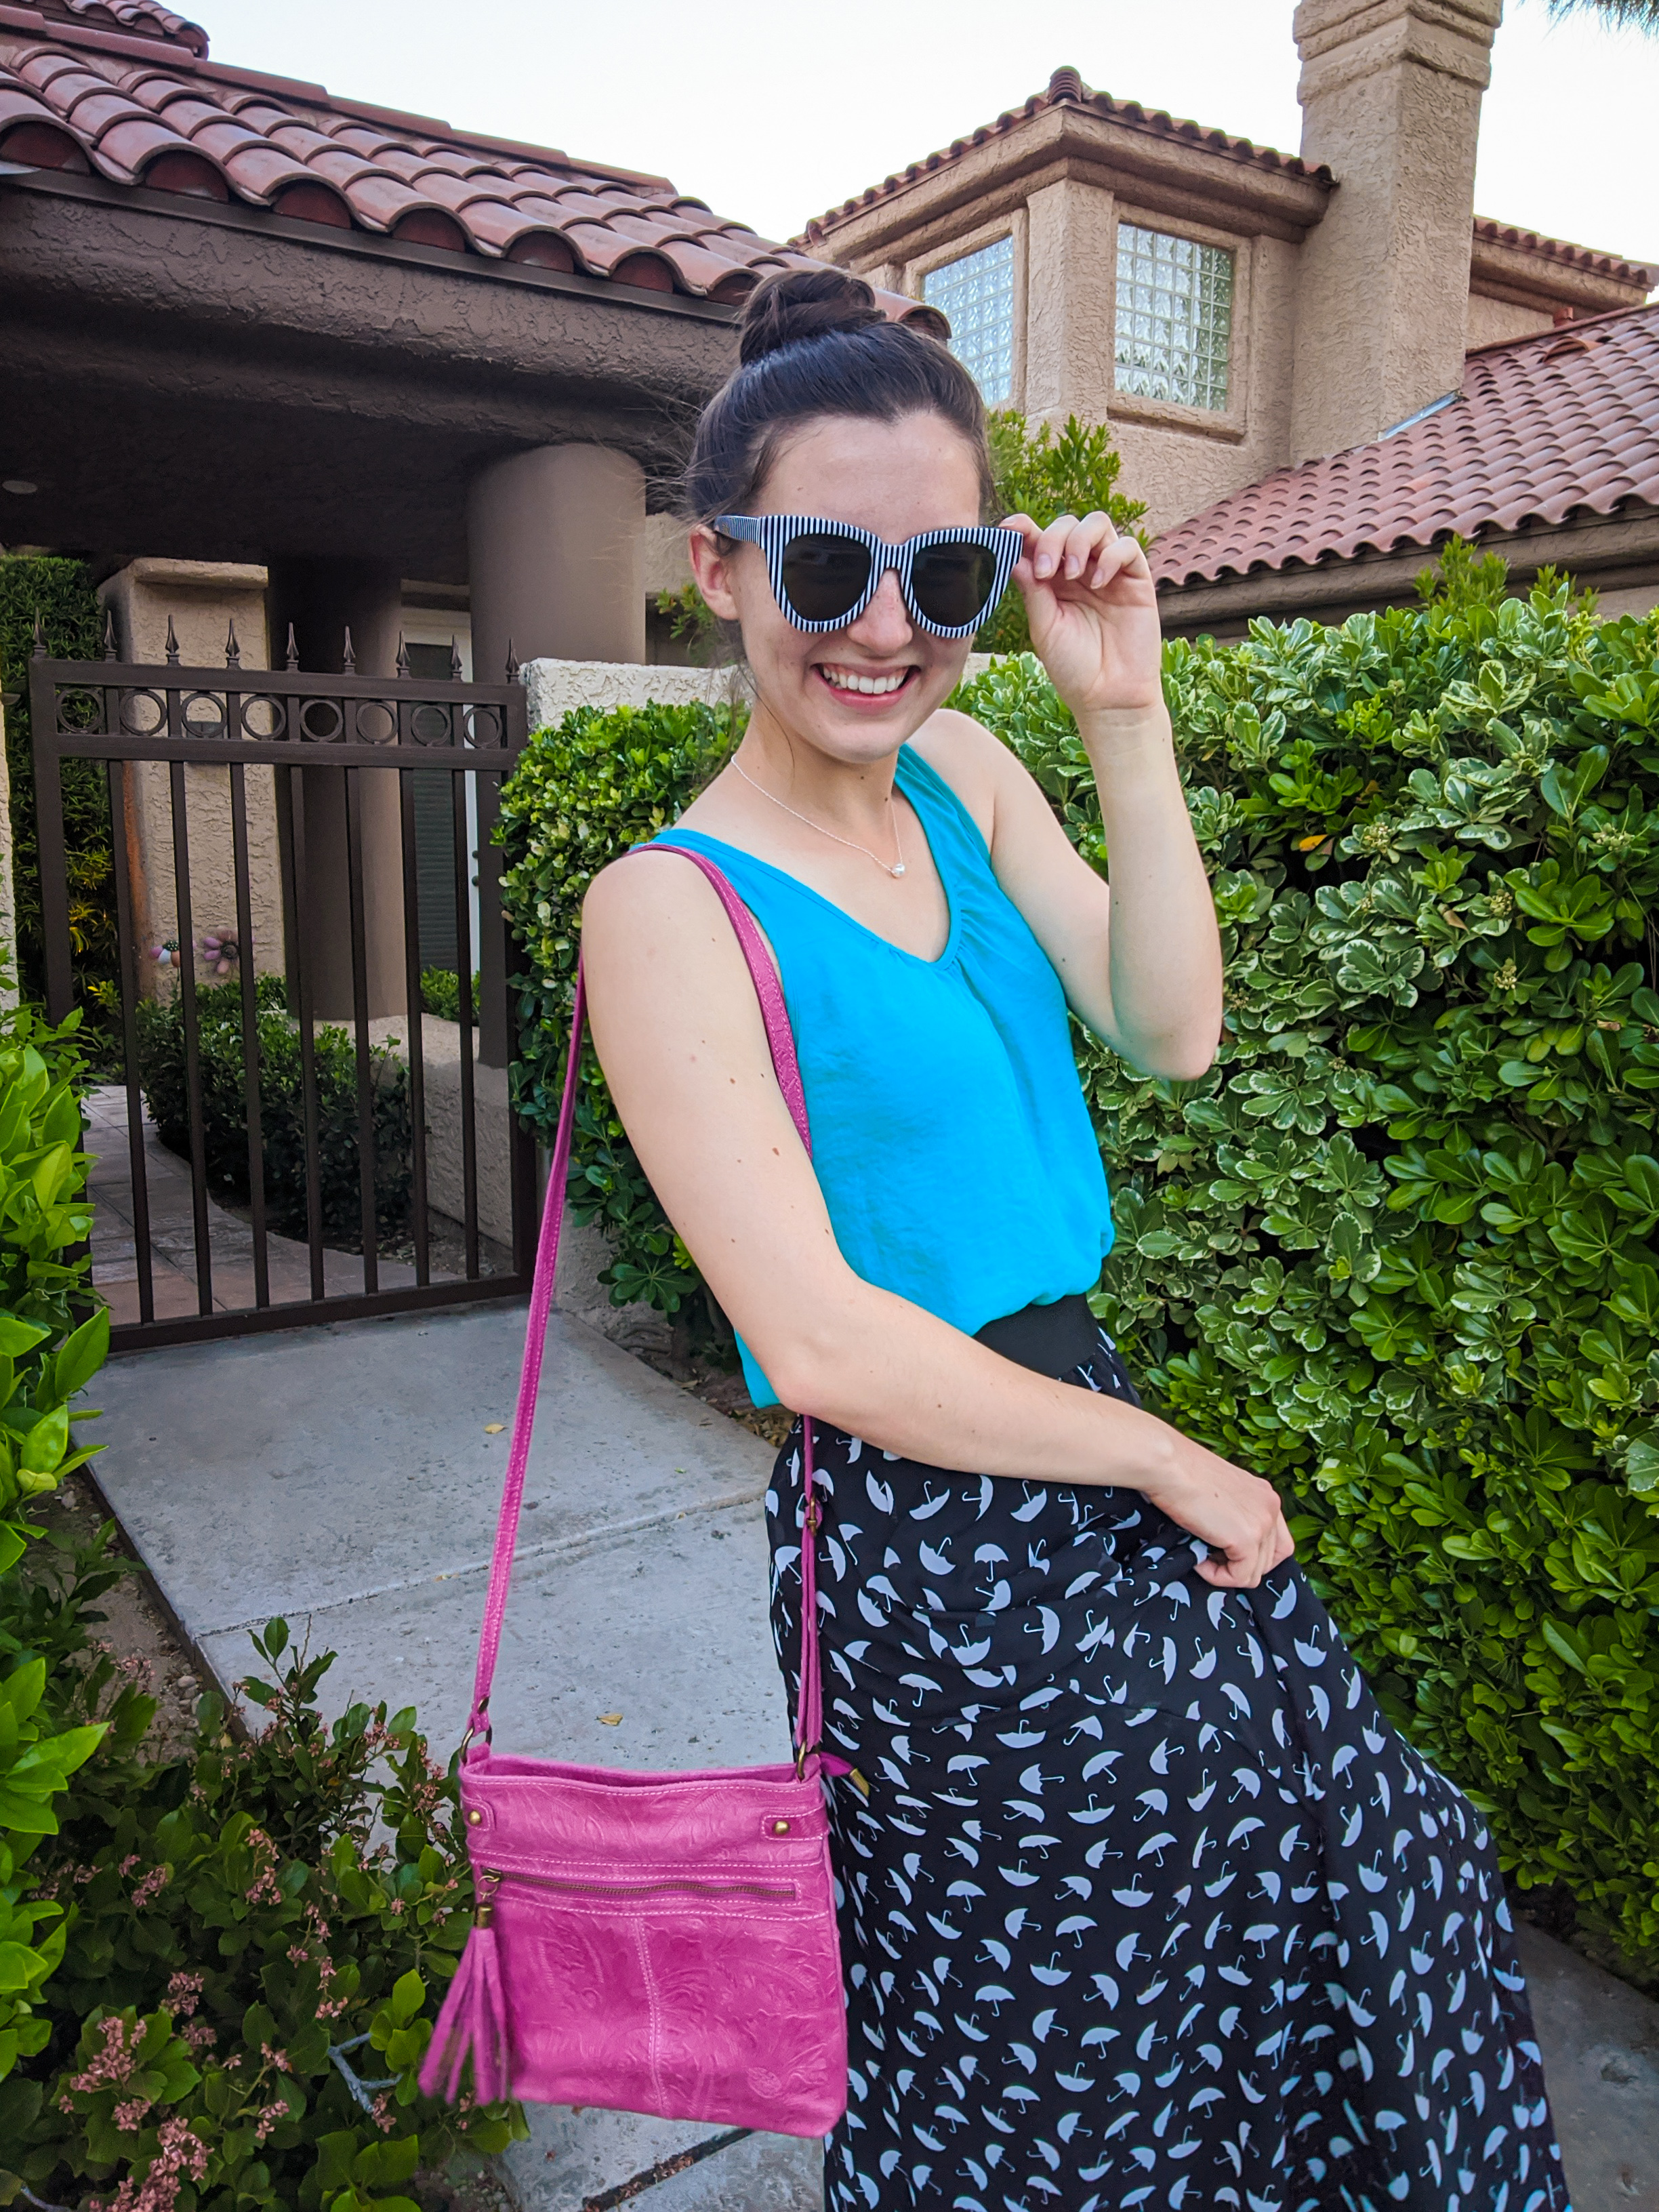 striped-sunglasses-jcpenney-thrifted-pink-purse